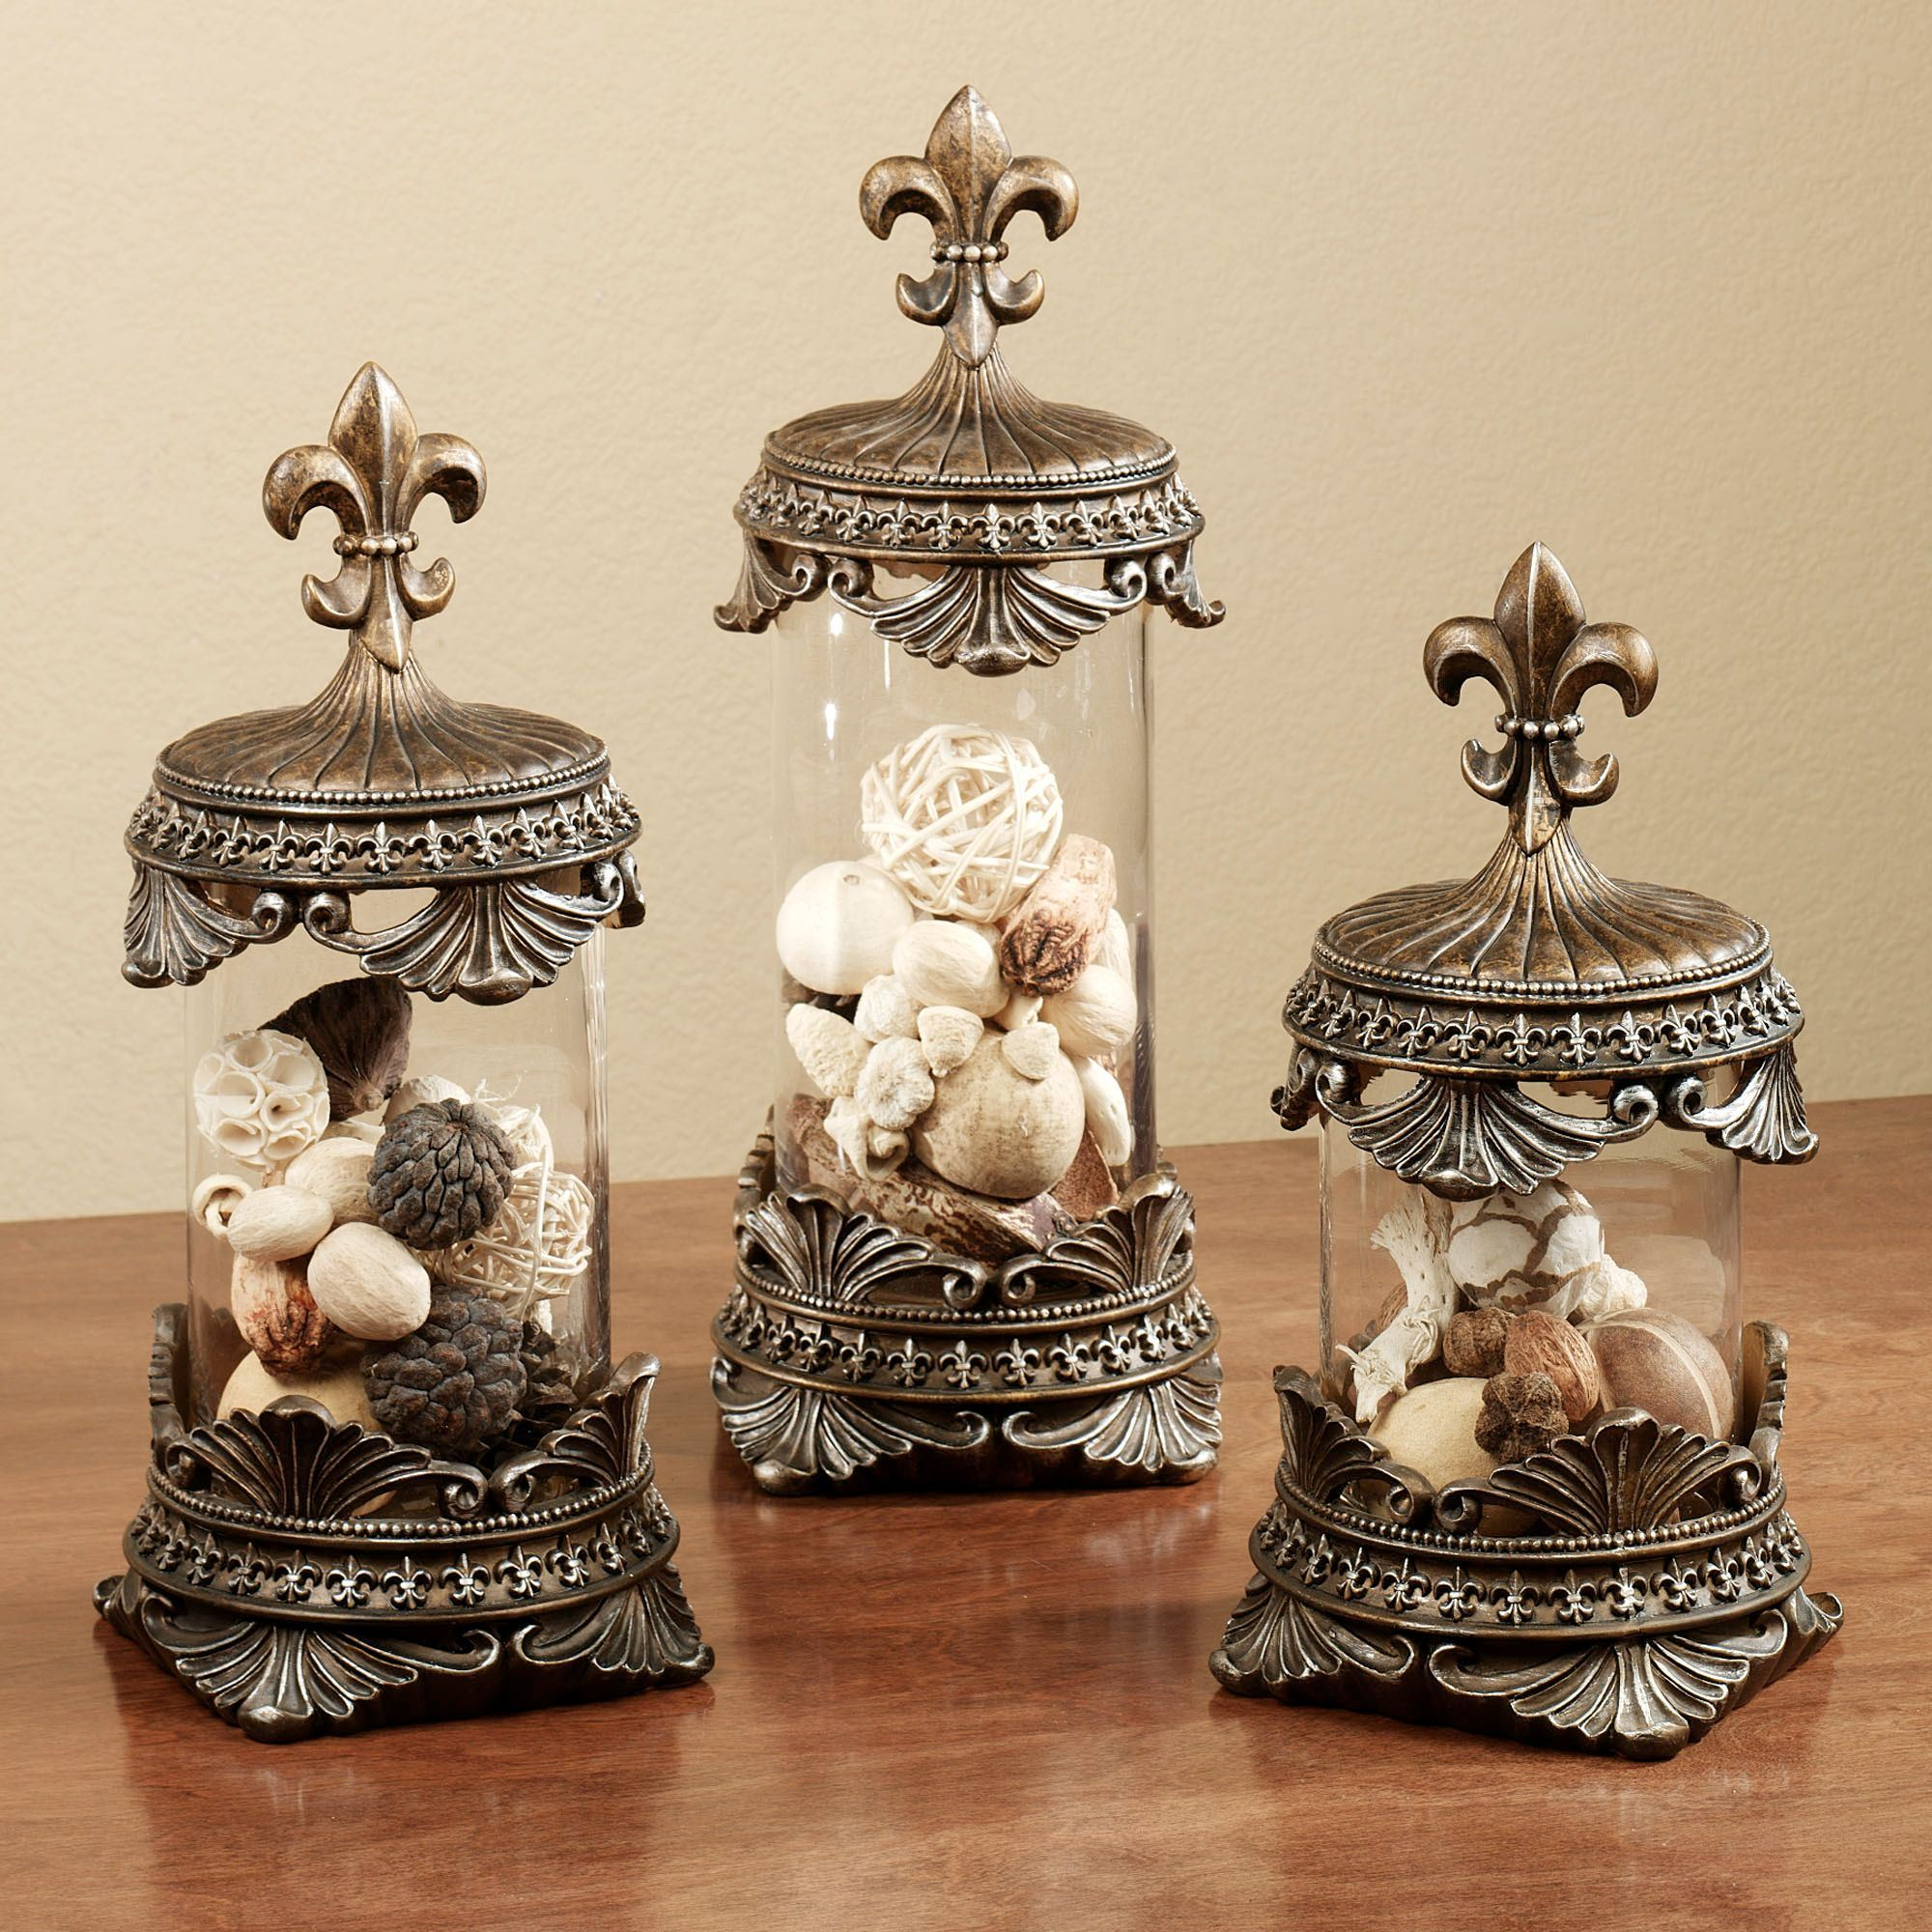 fleur de lis decorative jar set. Black Bedroom Furniture Sets. Home Design Ideas